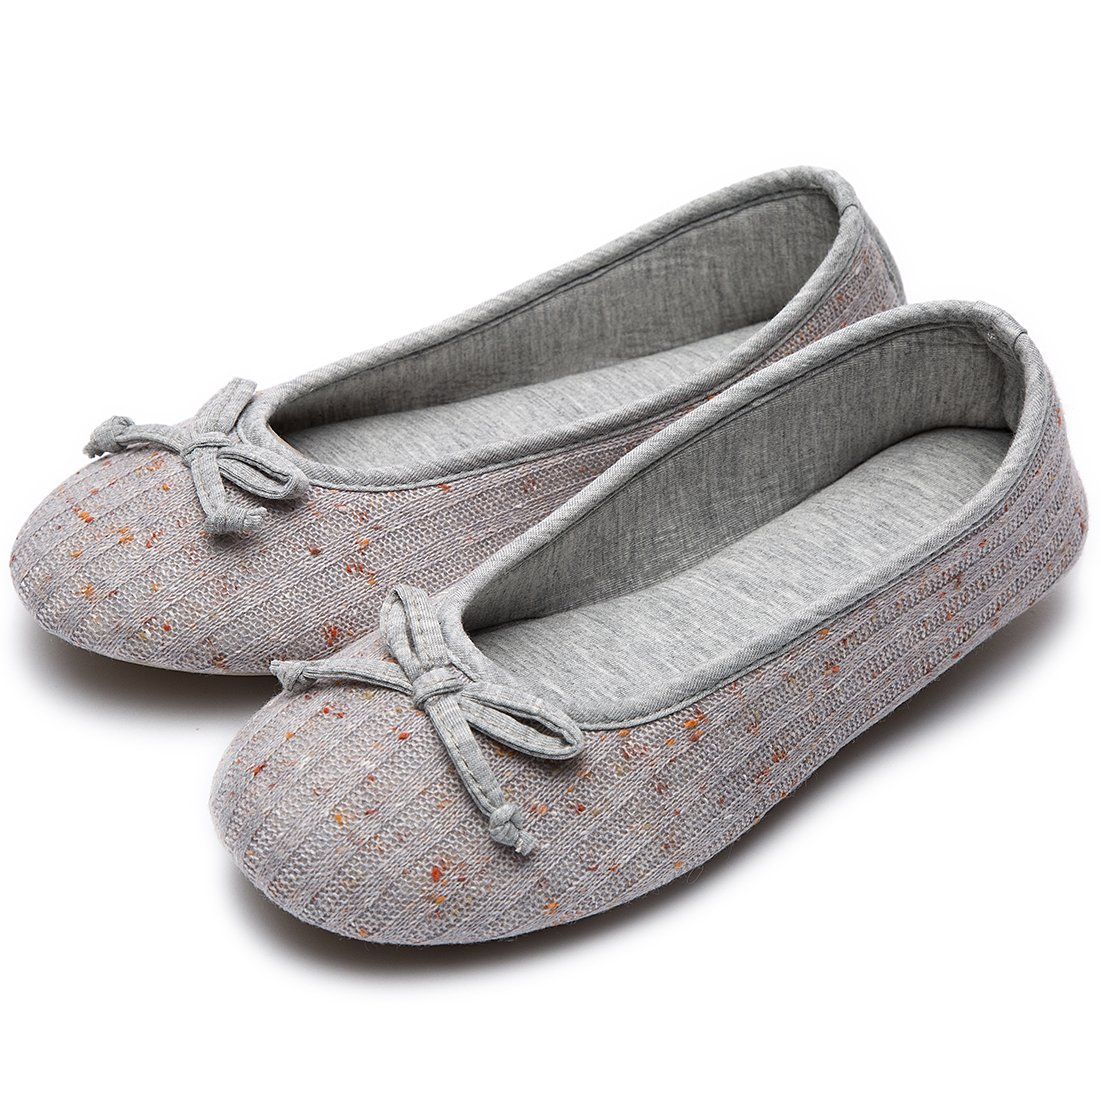 Women's Comfy Colored Knit Memory Foam Ballerina House Slippers Shoes with Anti-Slip Rubber Sole (Medium/7-8 B(M) US, Gray)